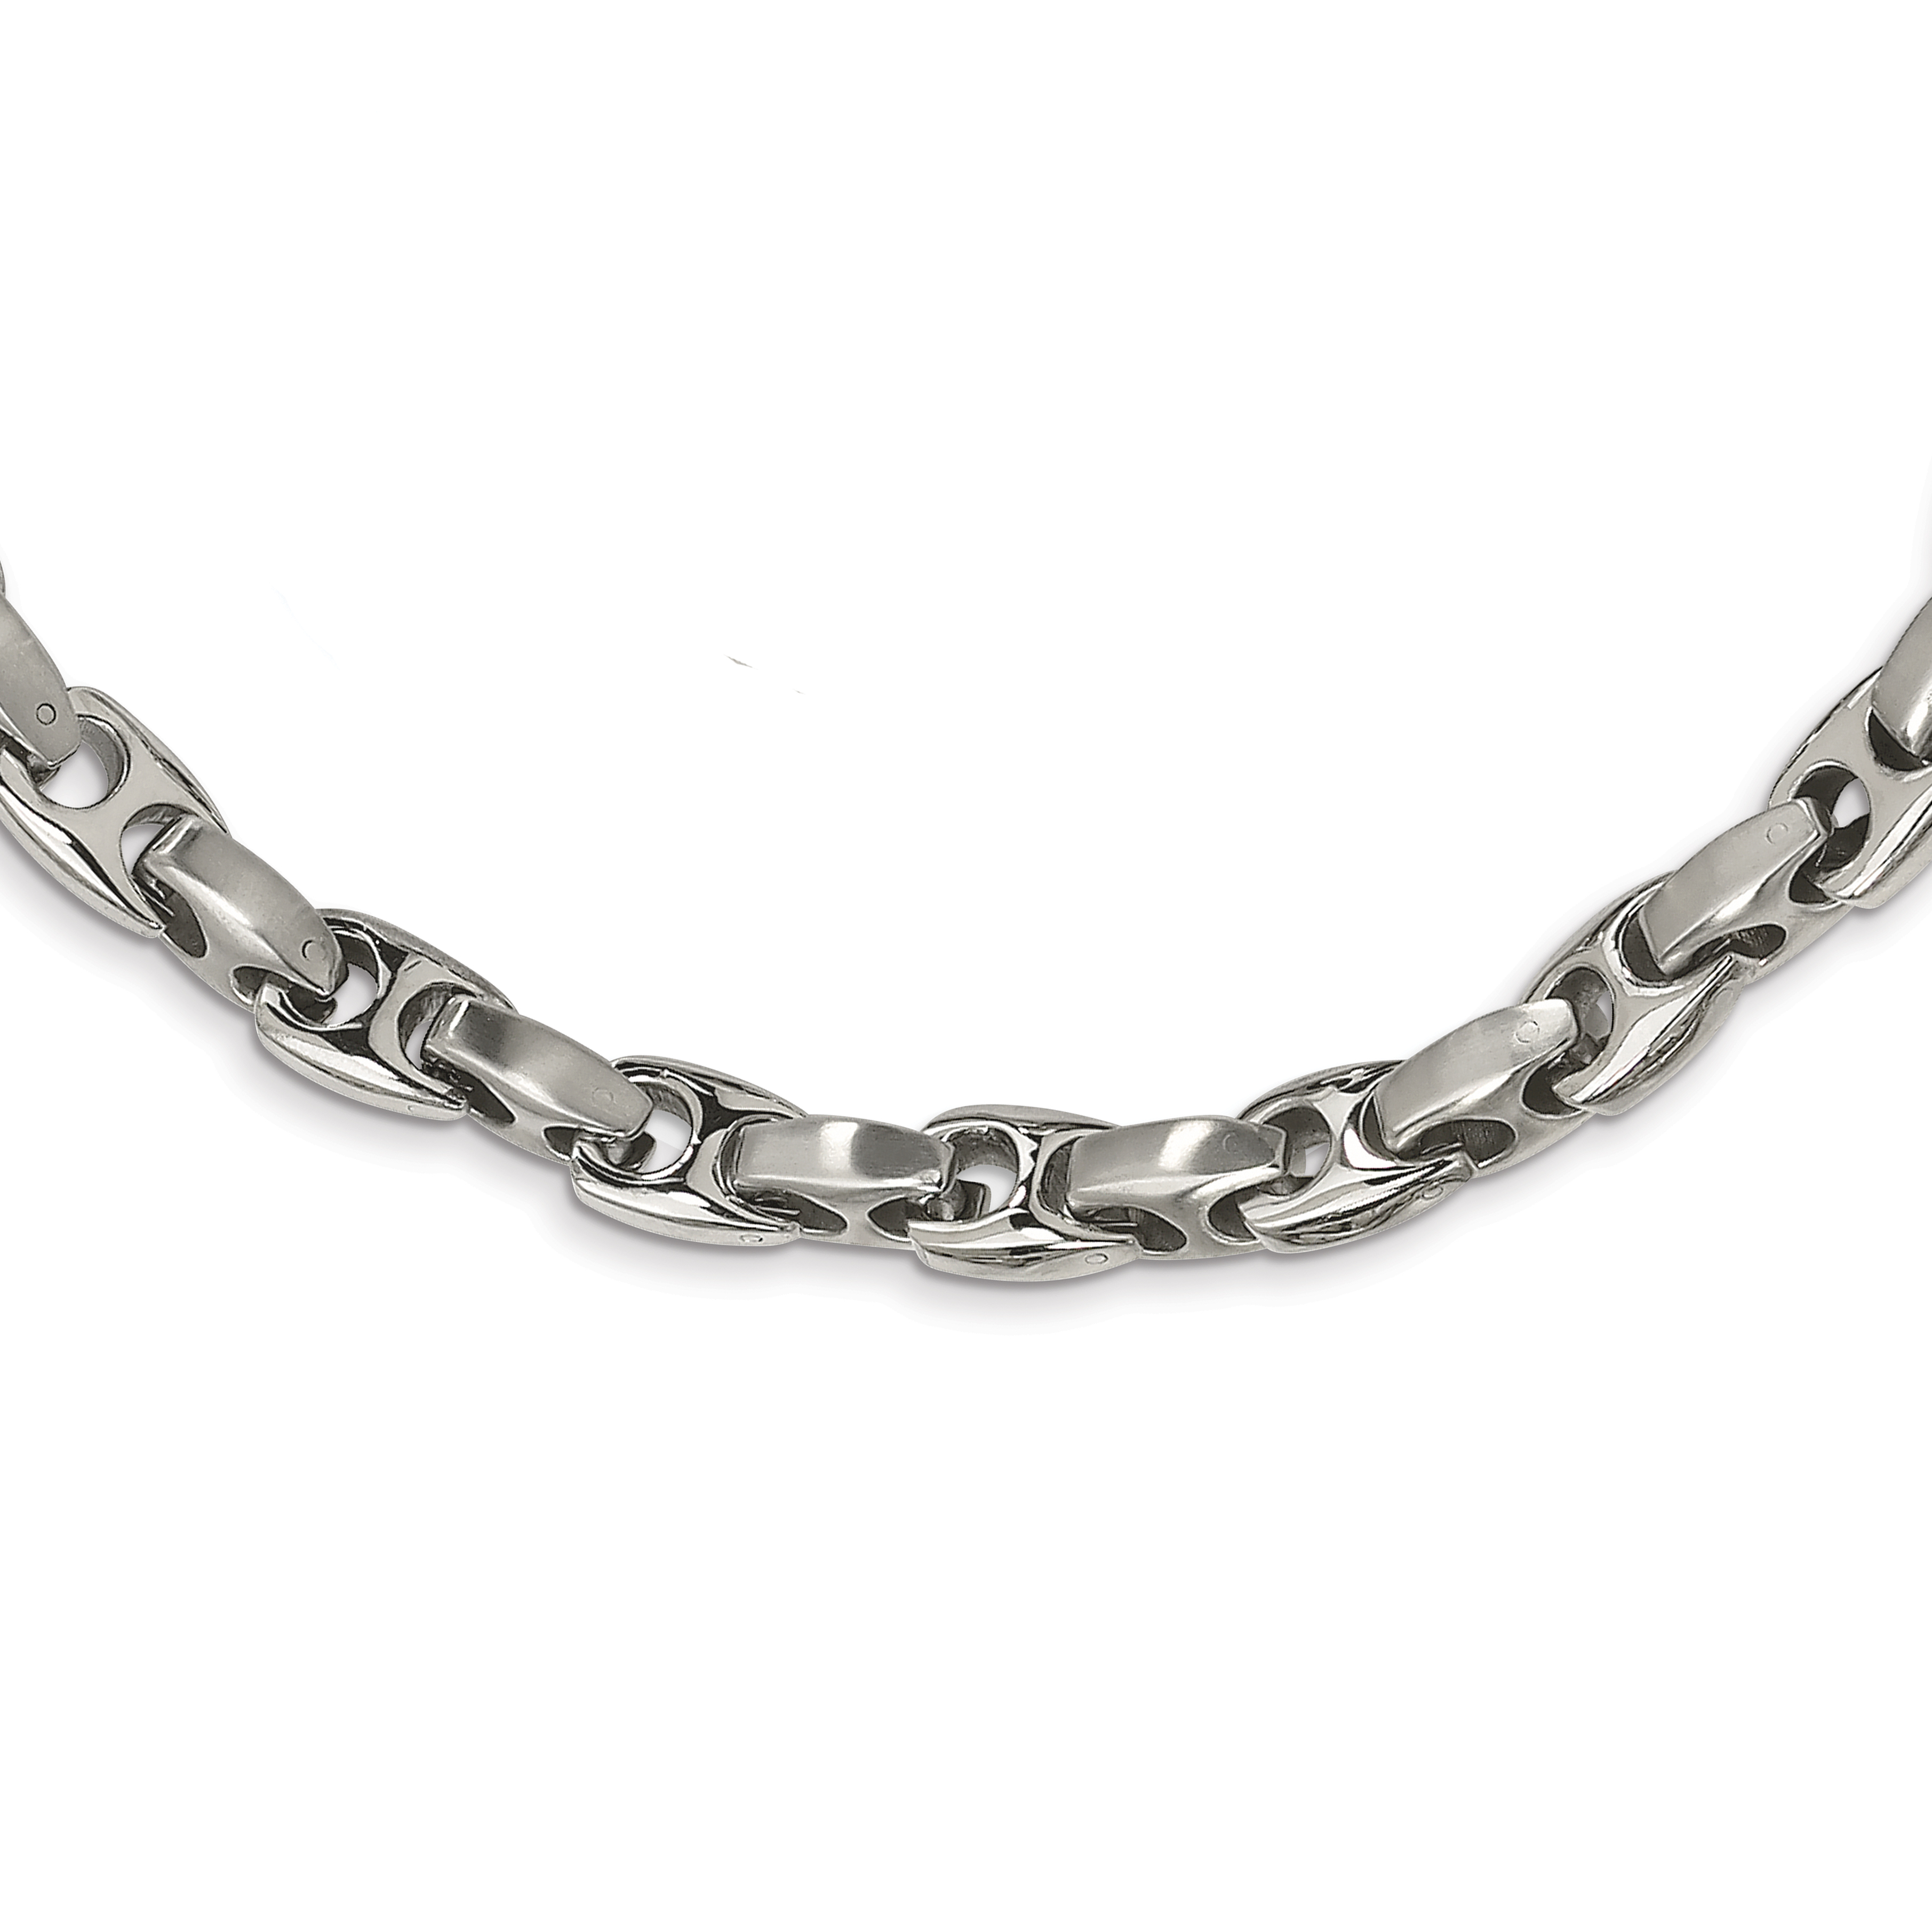 Stainless Steel Brushed 20 Inch Chain Necklace Pendant Charm Anchor Fashion Jewelry Gifts For Women For Her - image 4 of 4